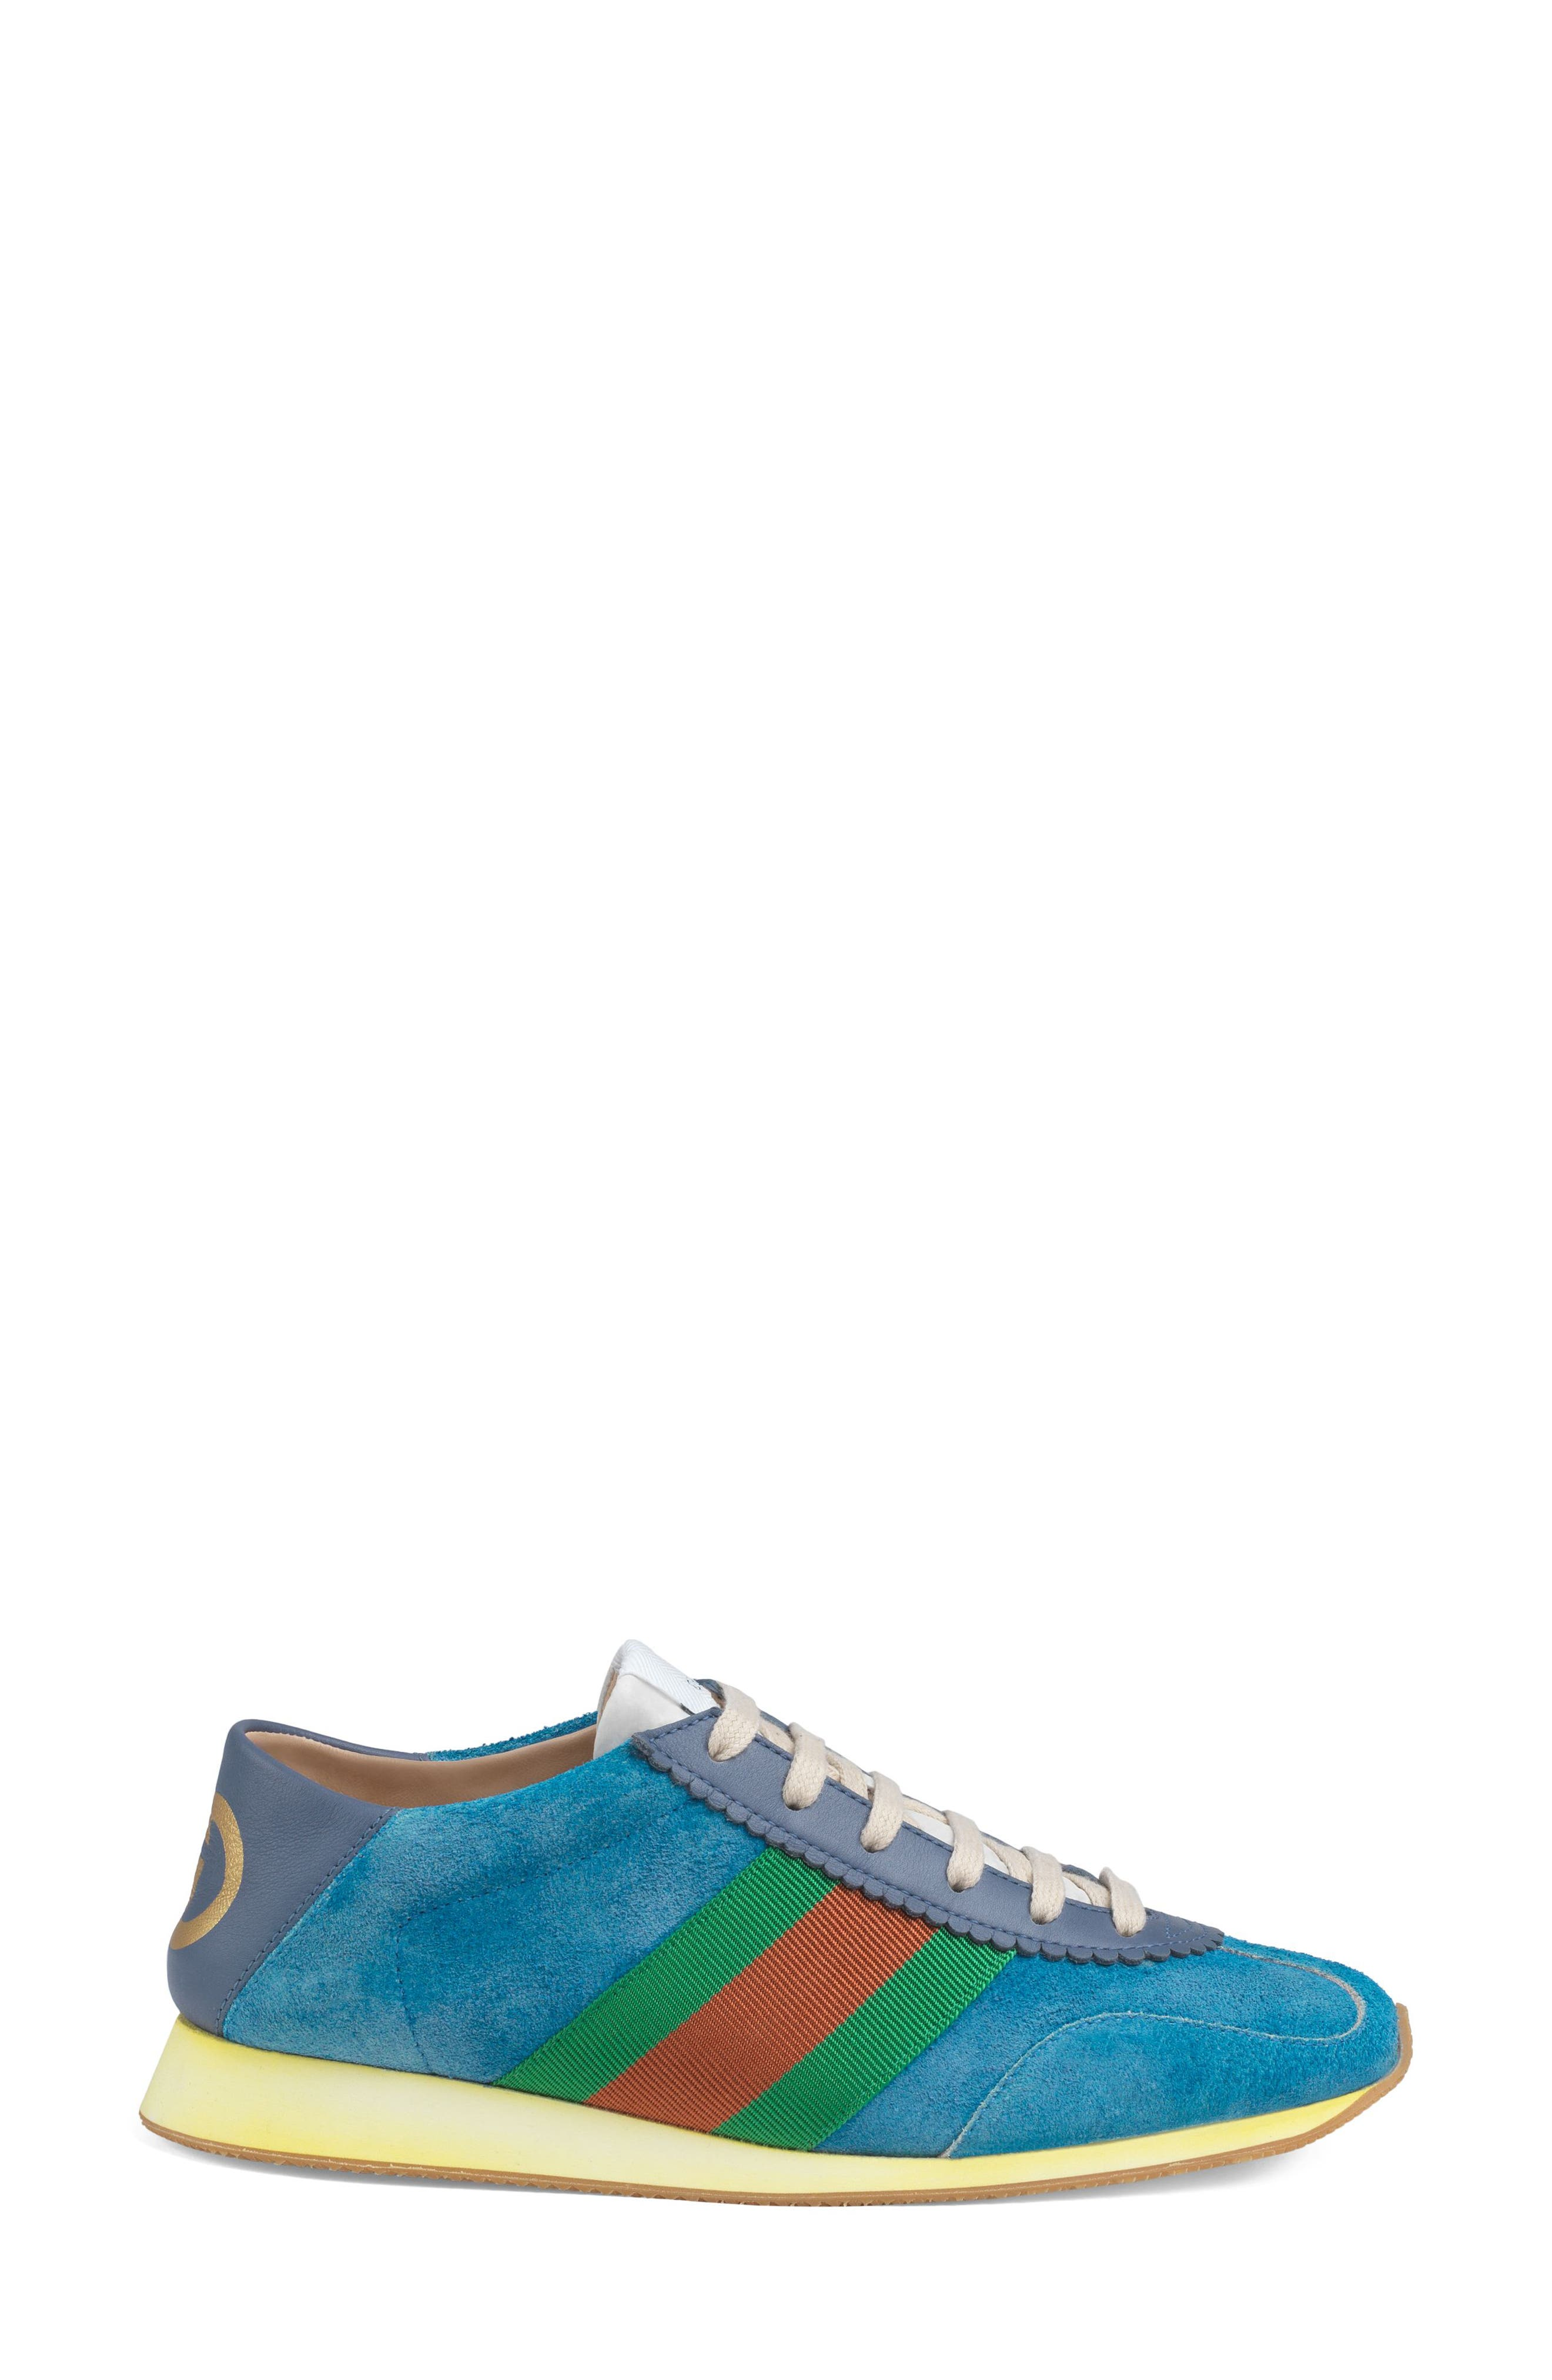 GUCCI, Rocket Convertible Sneaker, Alternate thumbnail 2, color, BLUE